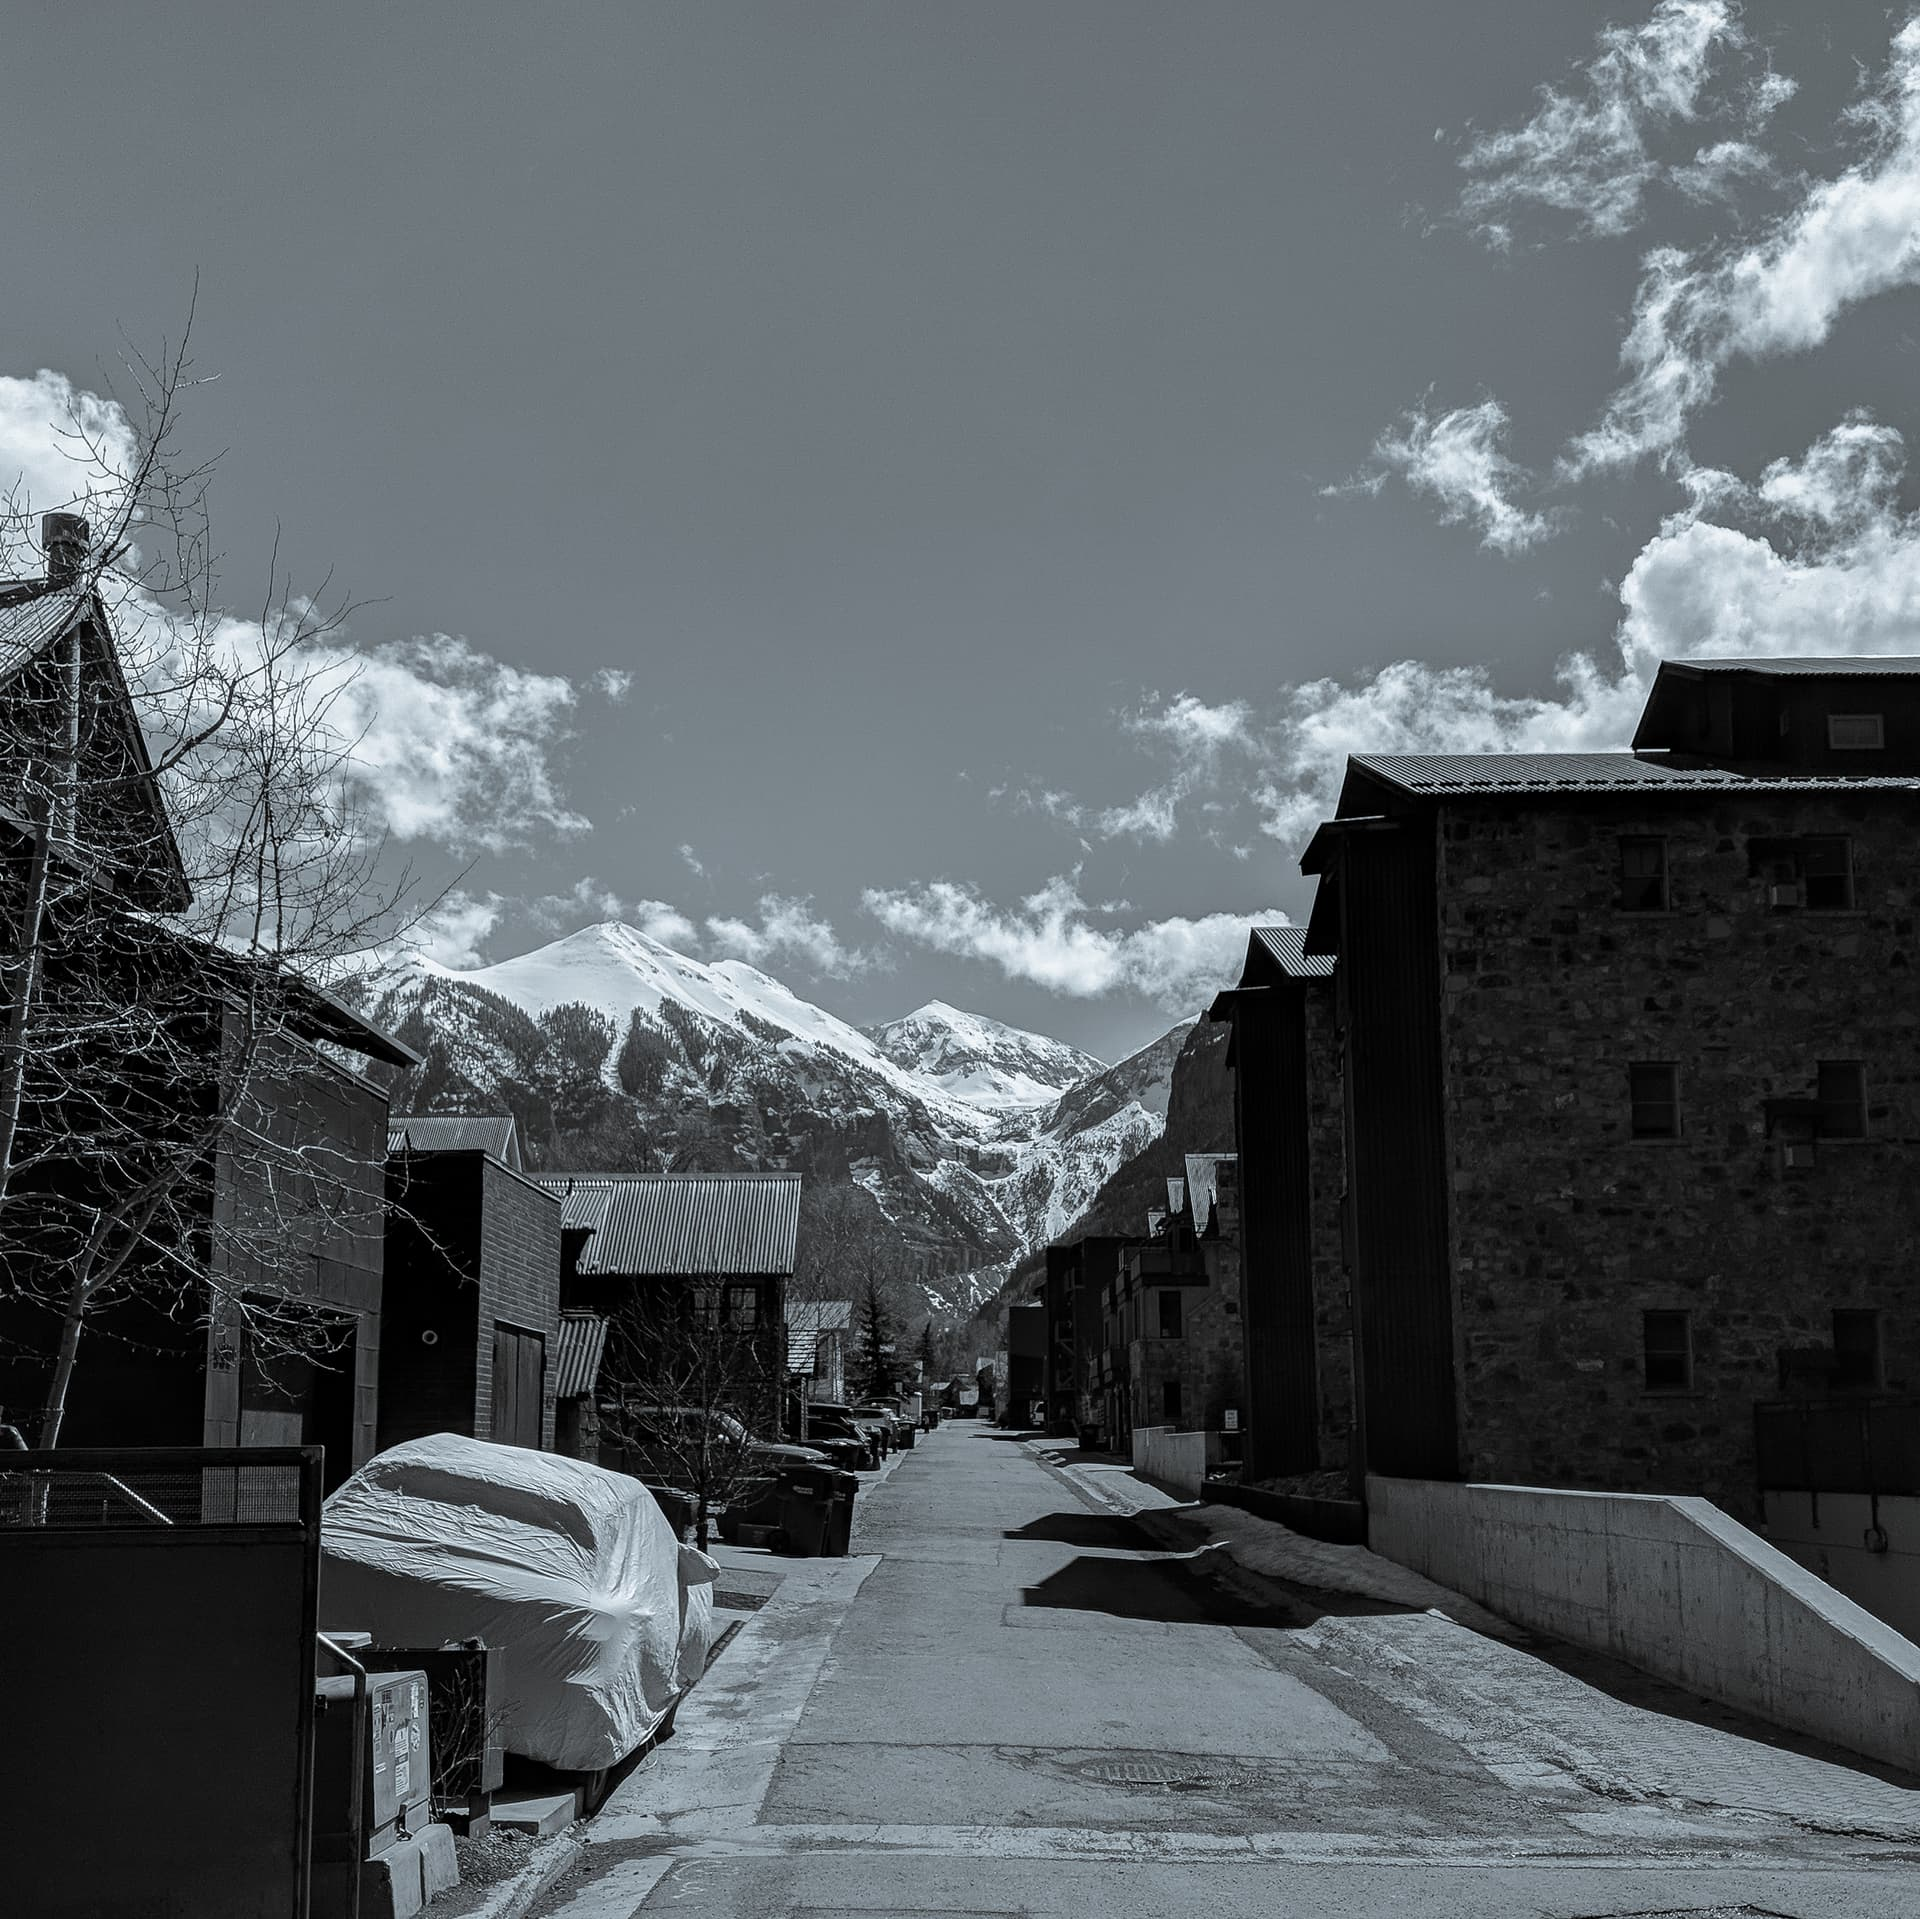 Looking down the road in a mountain town. Beyond the rooftops, three distinctly triangular snow-capped peaks can be seen.